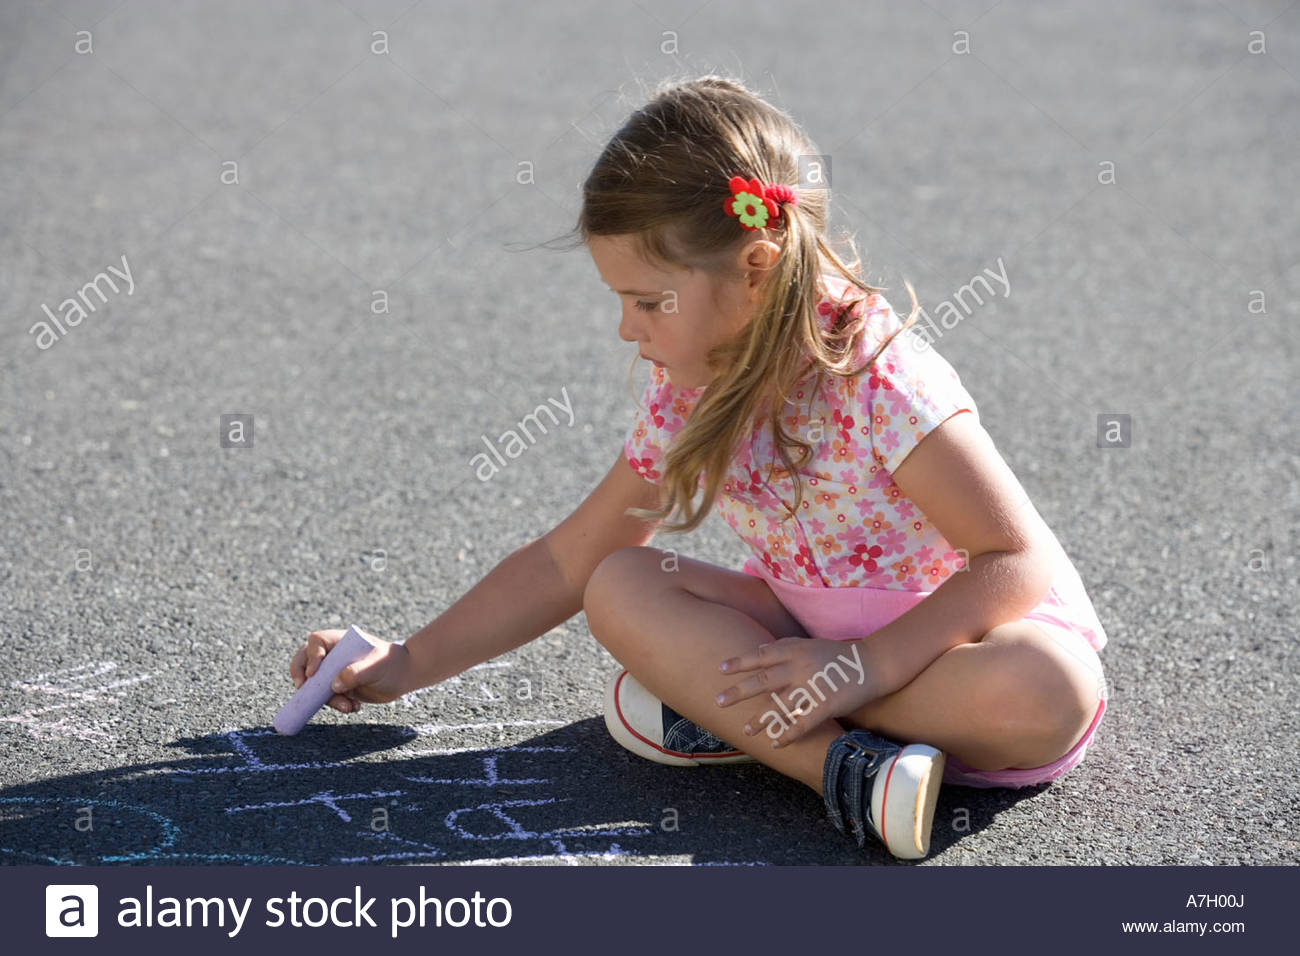 Young girl writing in chalk on the playground - Stock Image